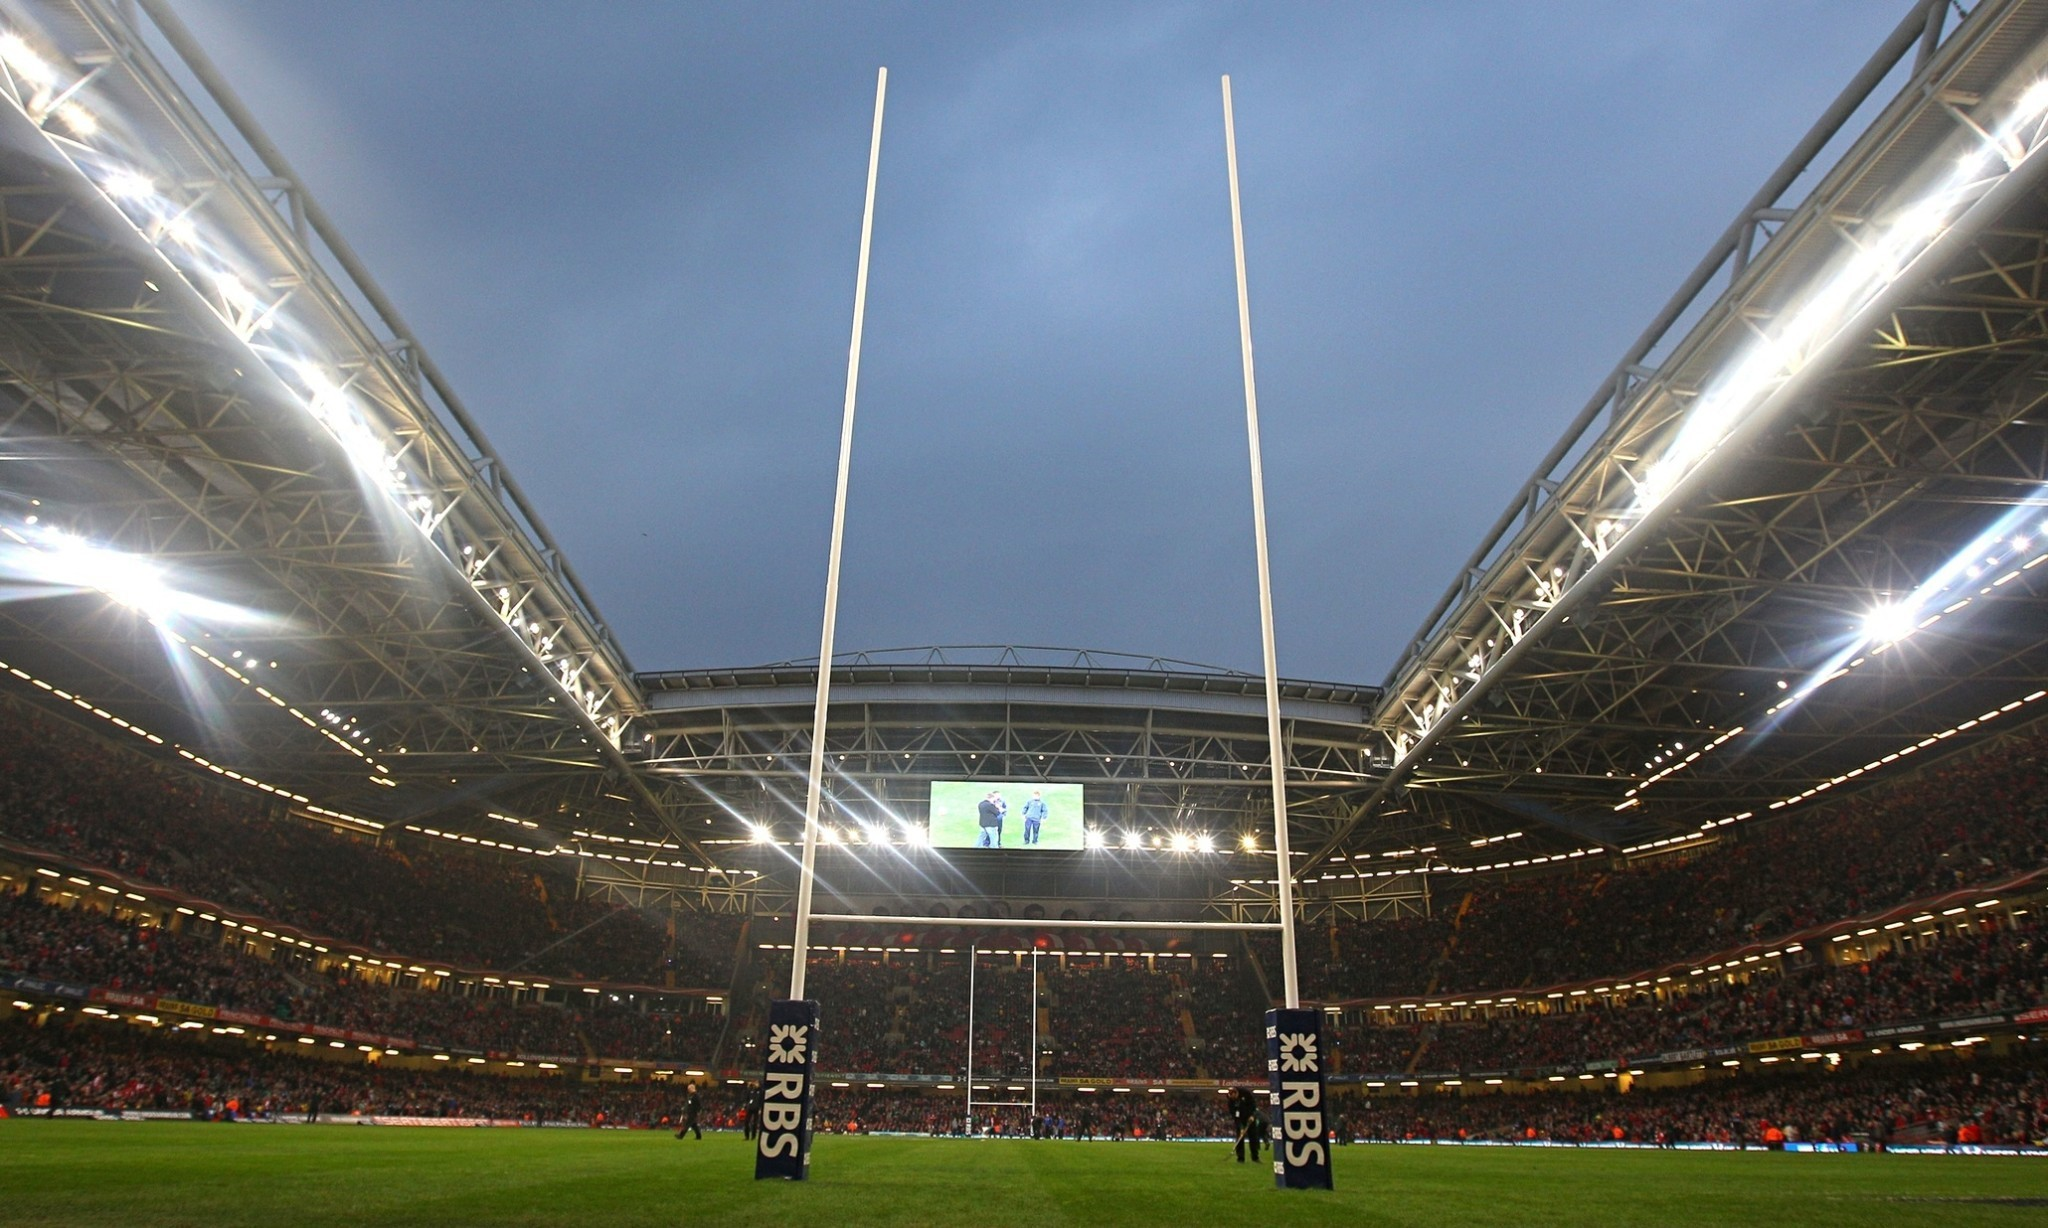 Friday night games to stay as 2016 and 2017 Six Nations fixtures announced